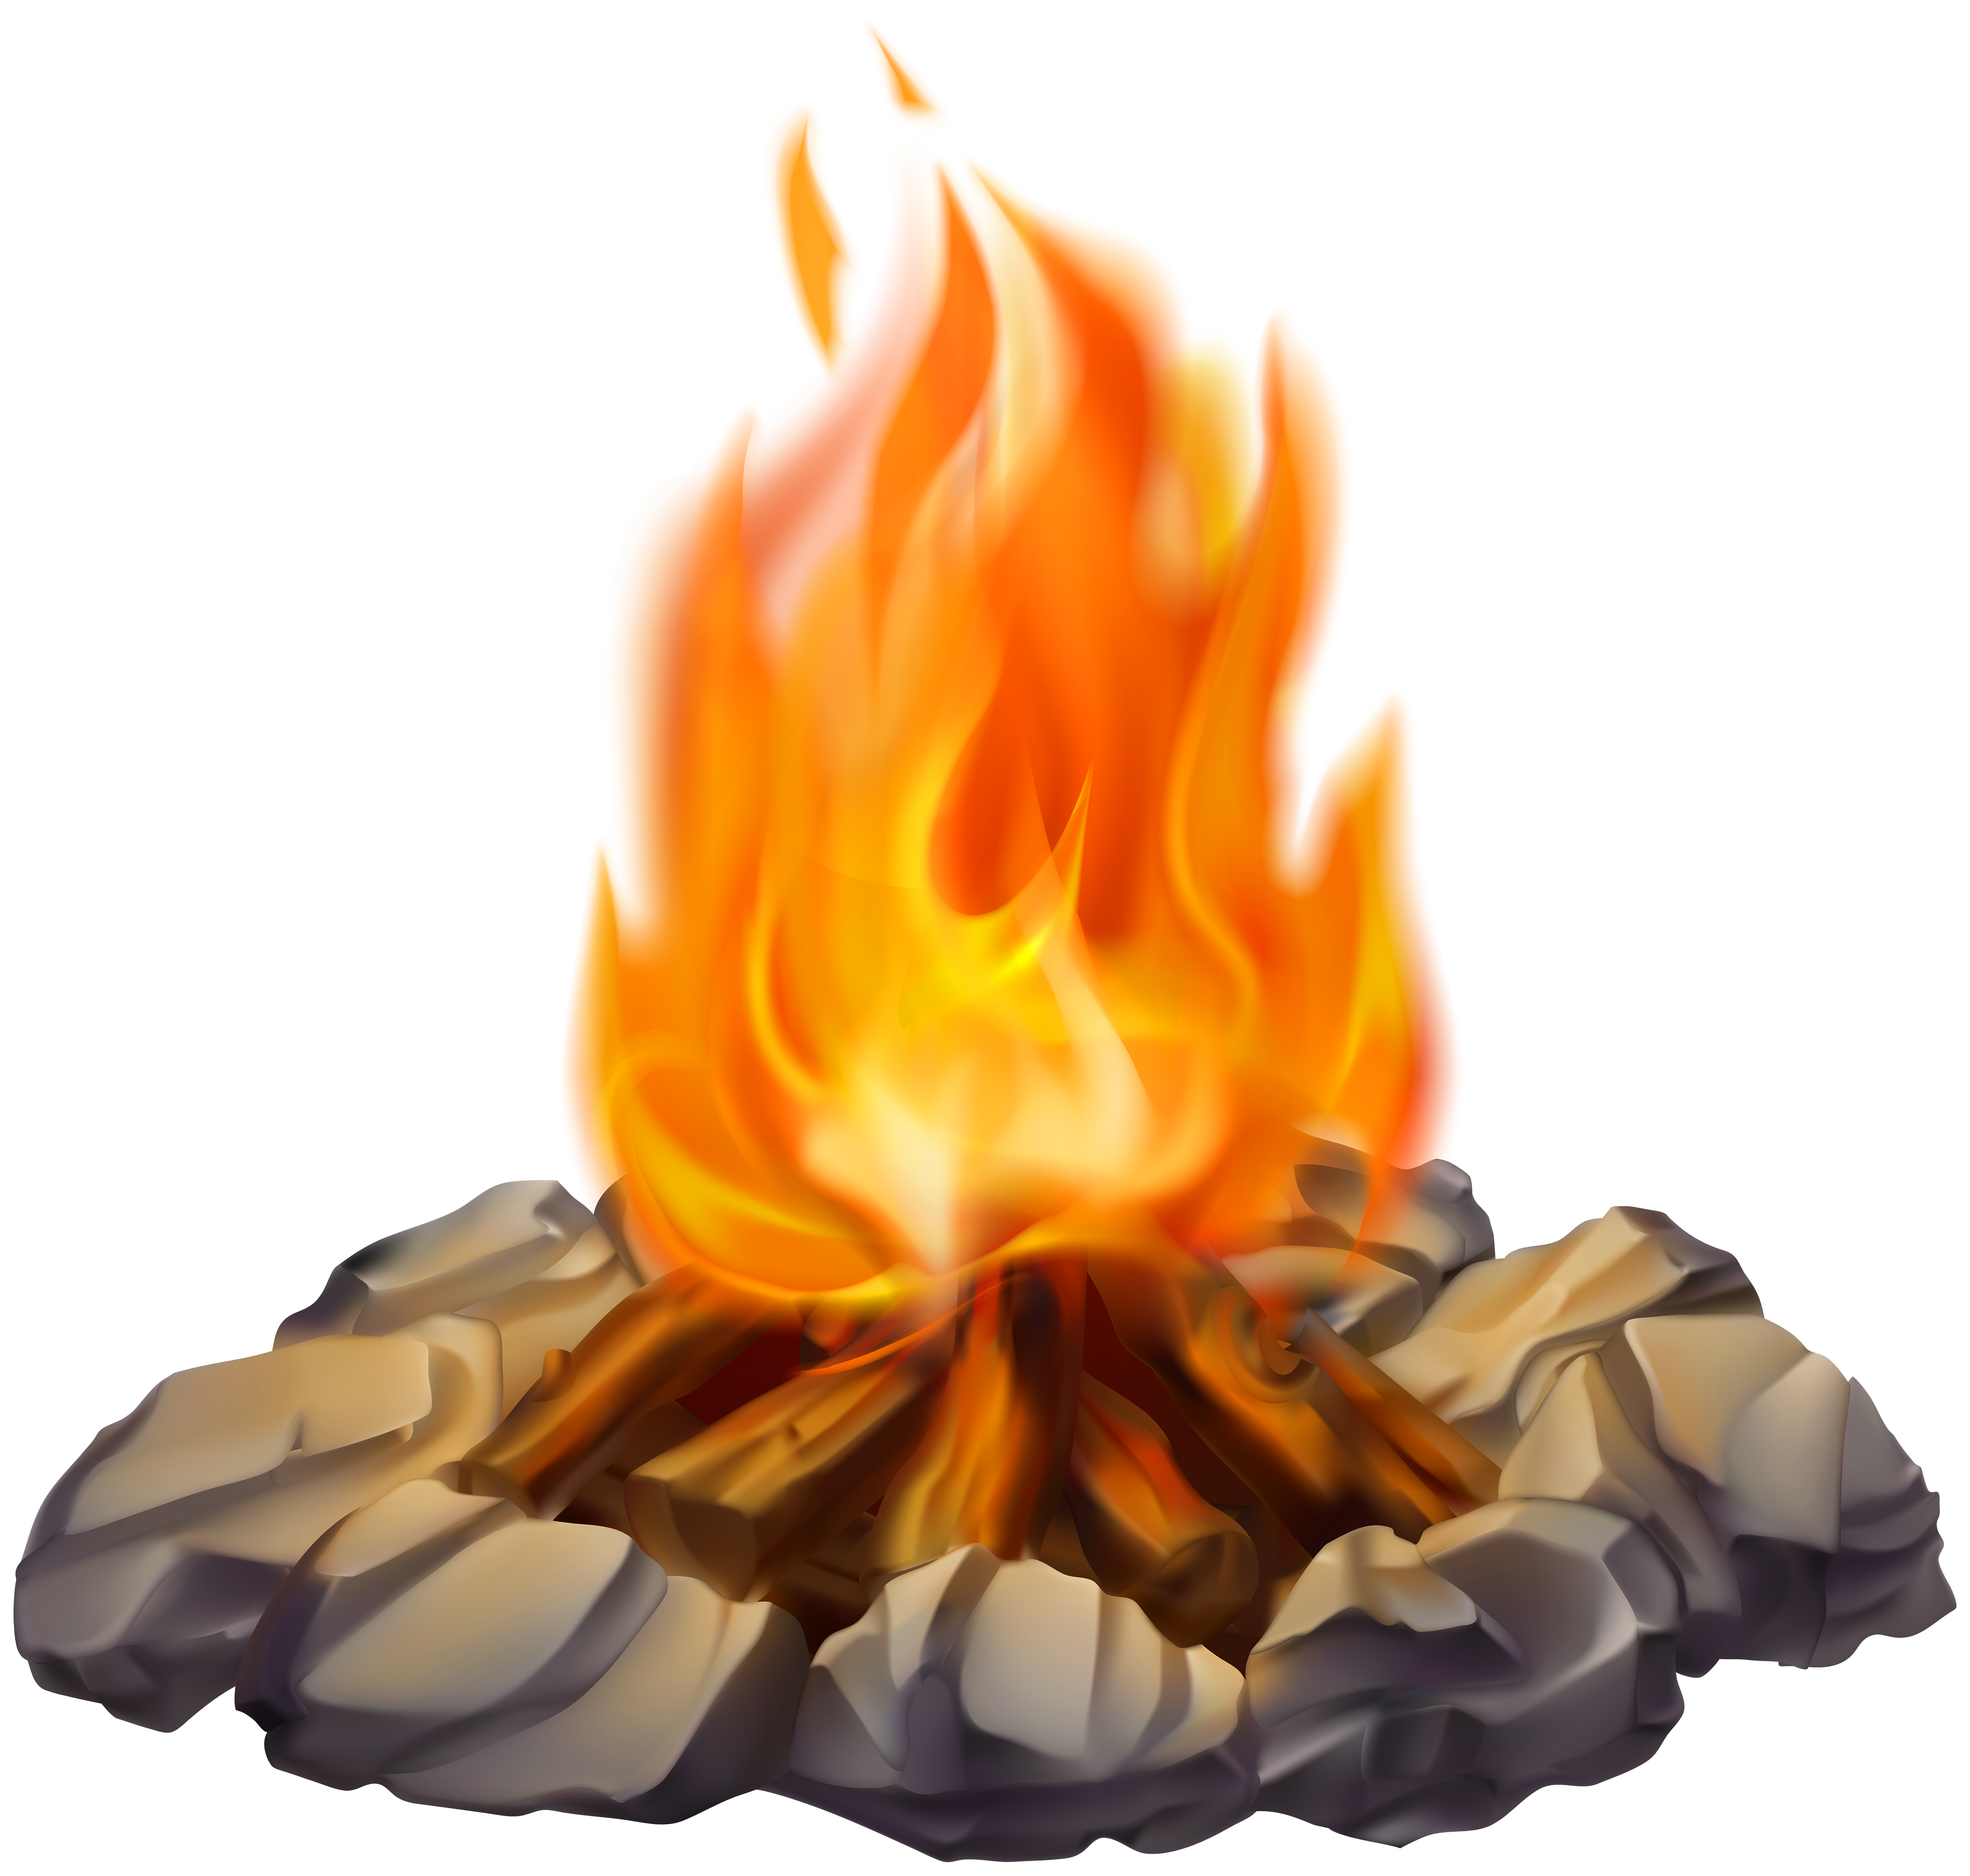 Png clip art image. Campfire clipart image stock